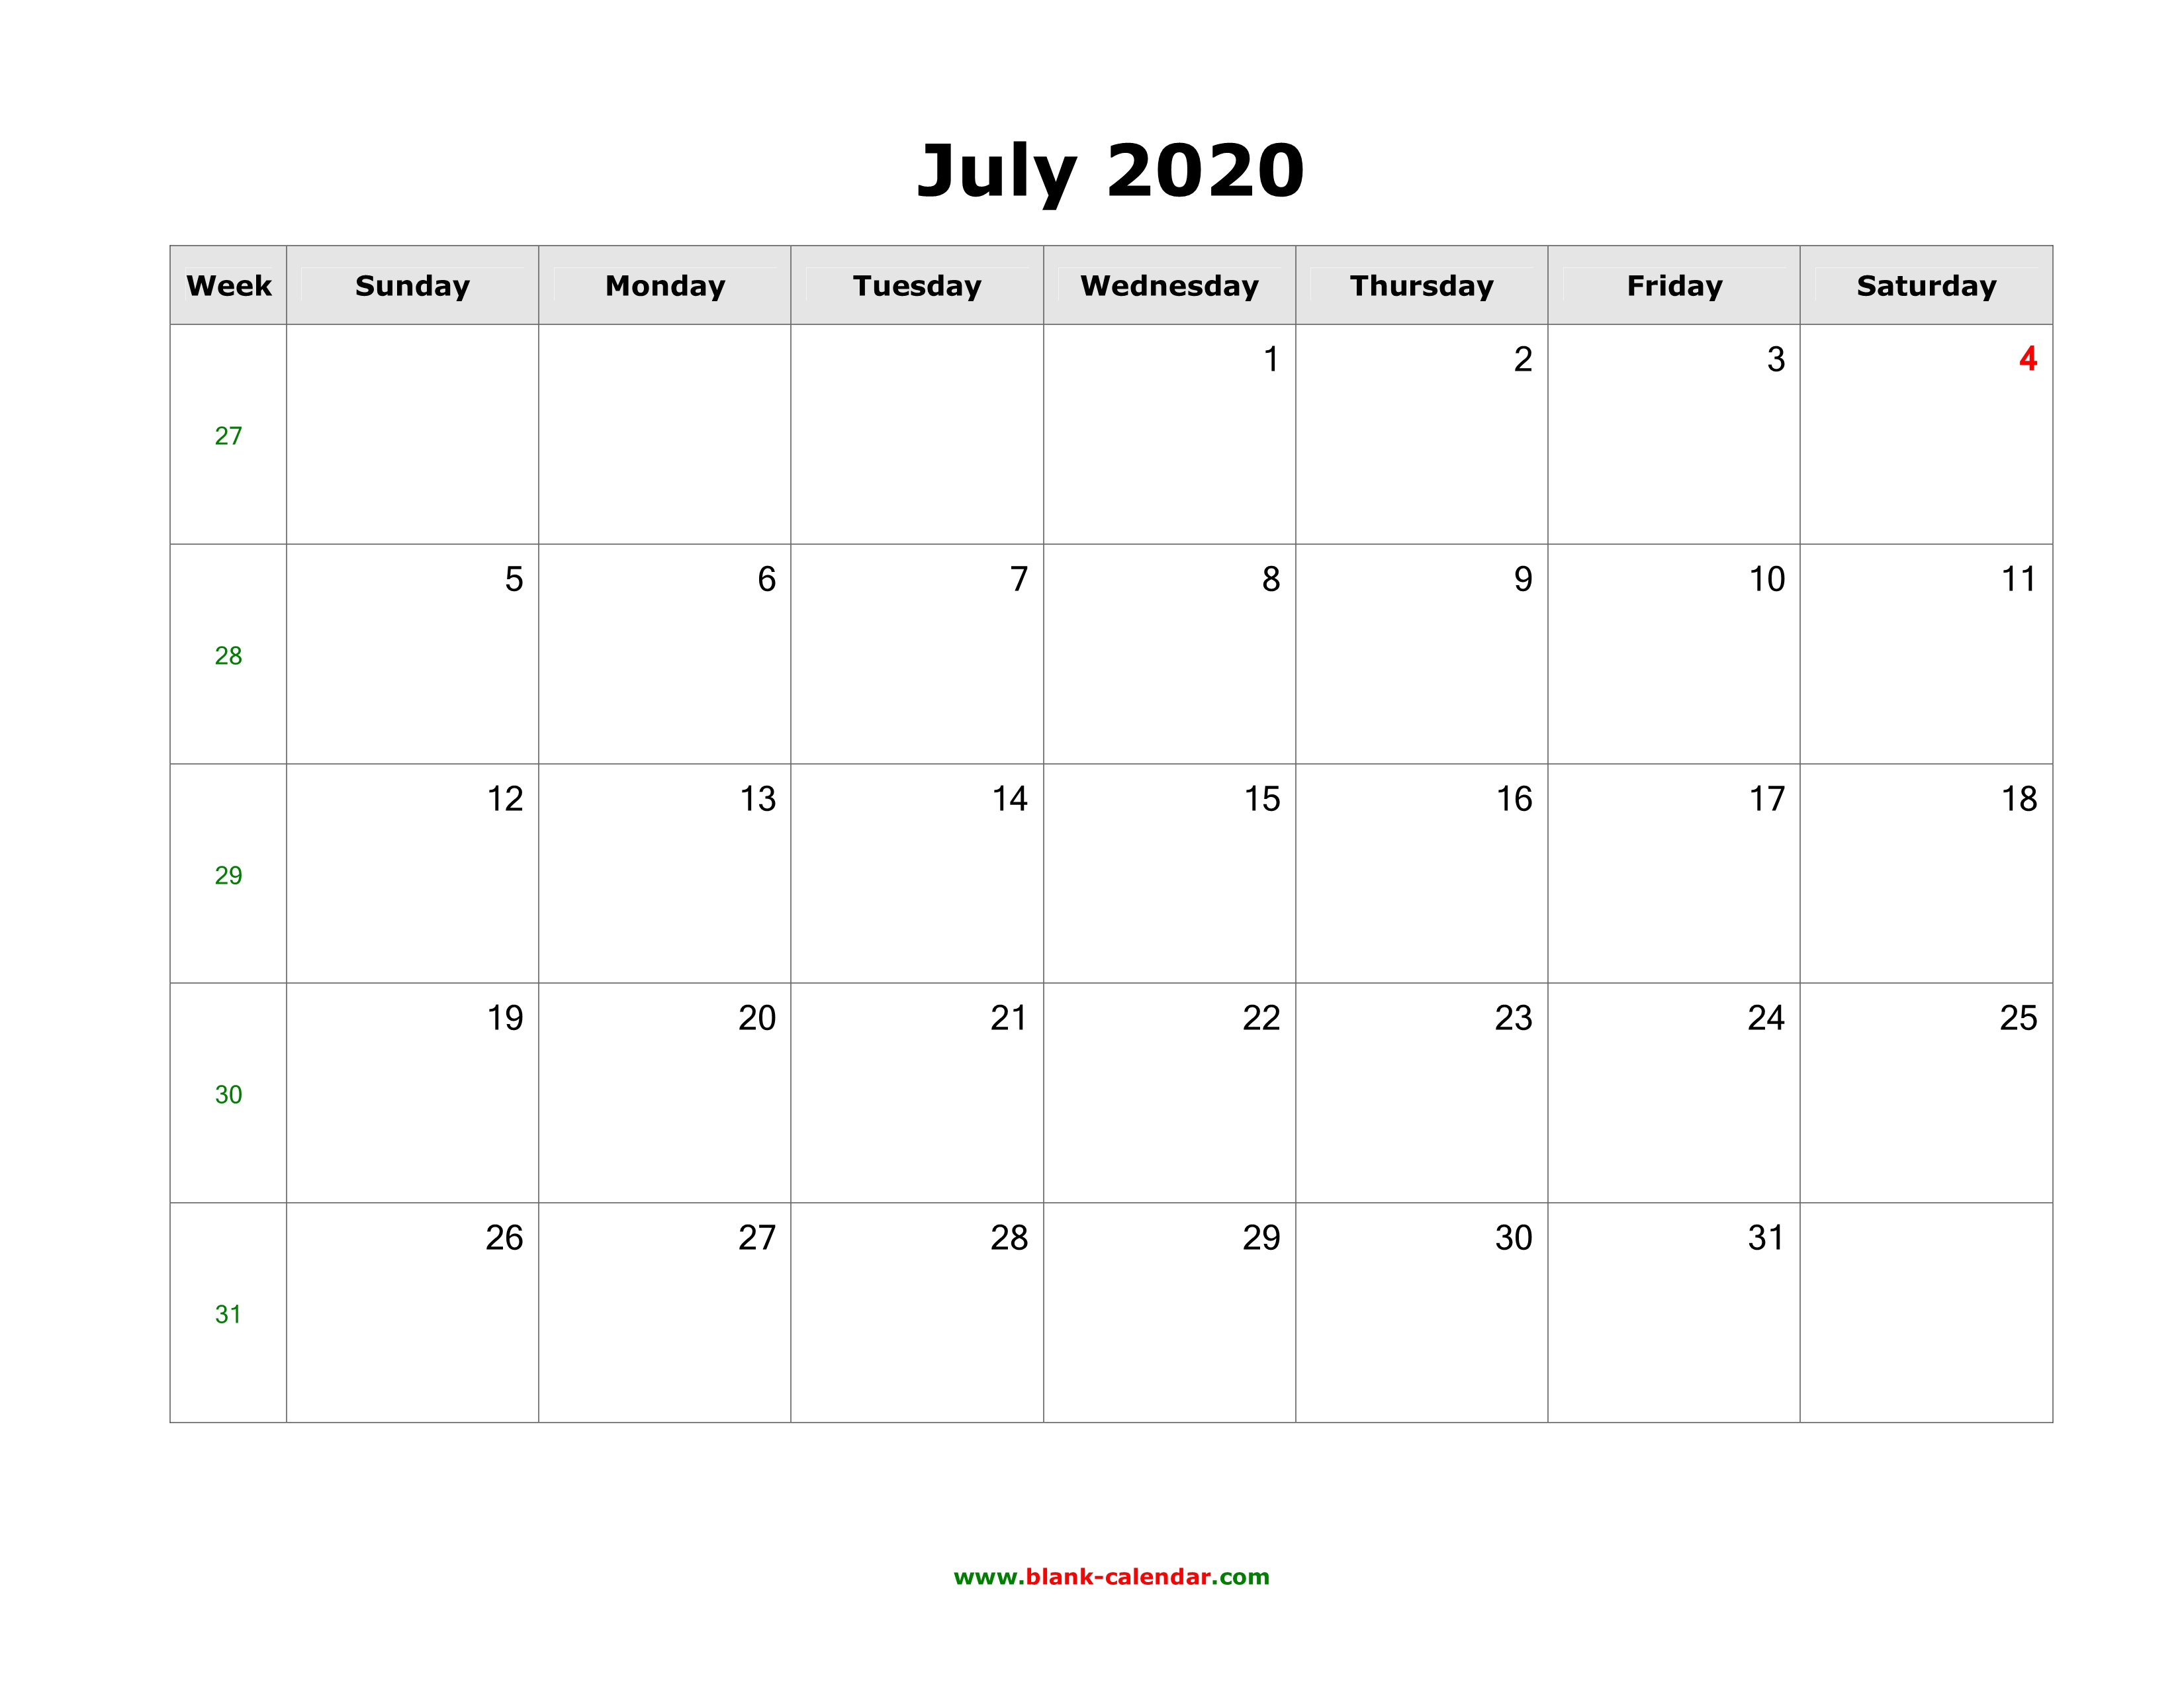 Printable Calendar July 2020.Download July 2020 Blank Calendar Horizontal